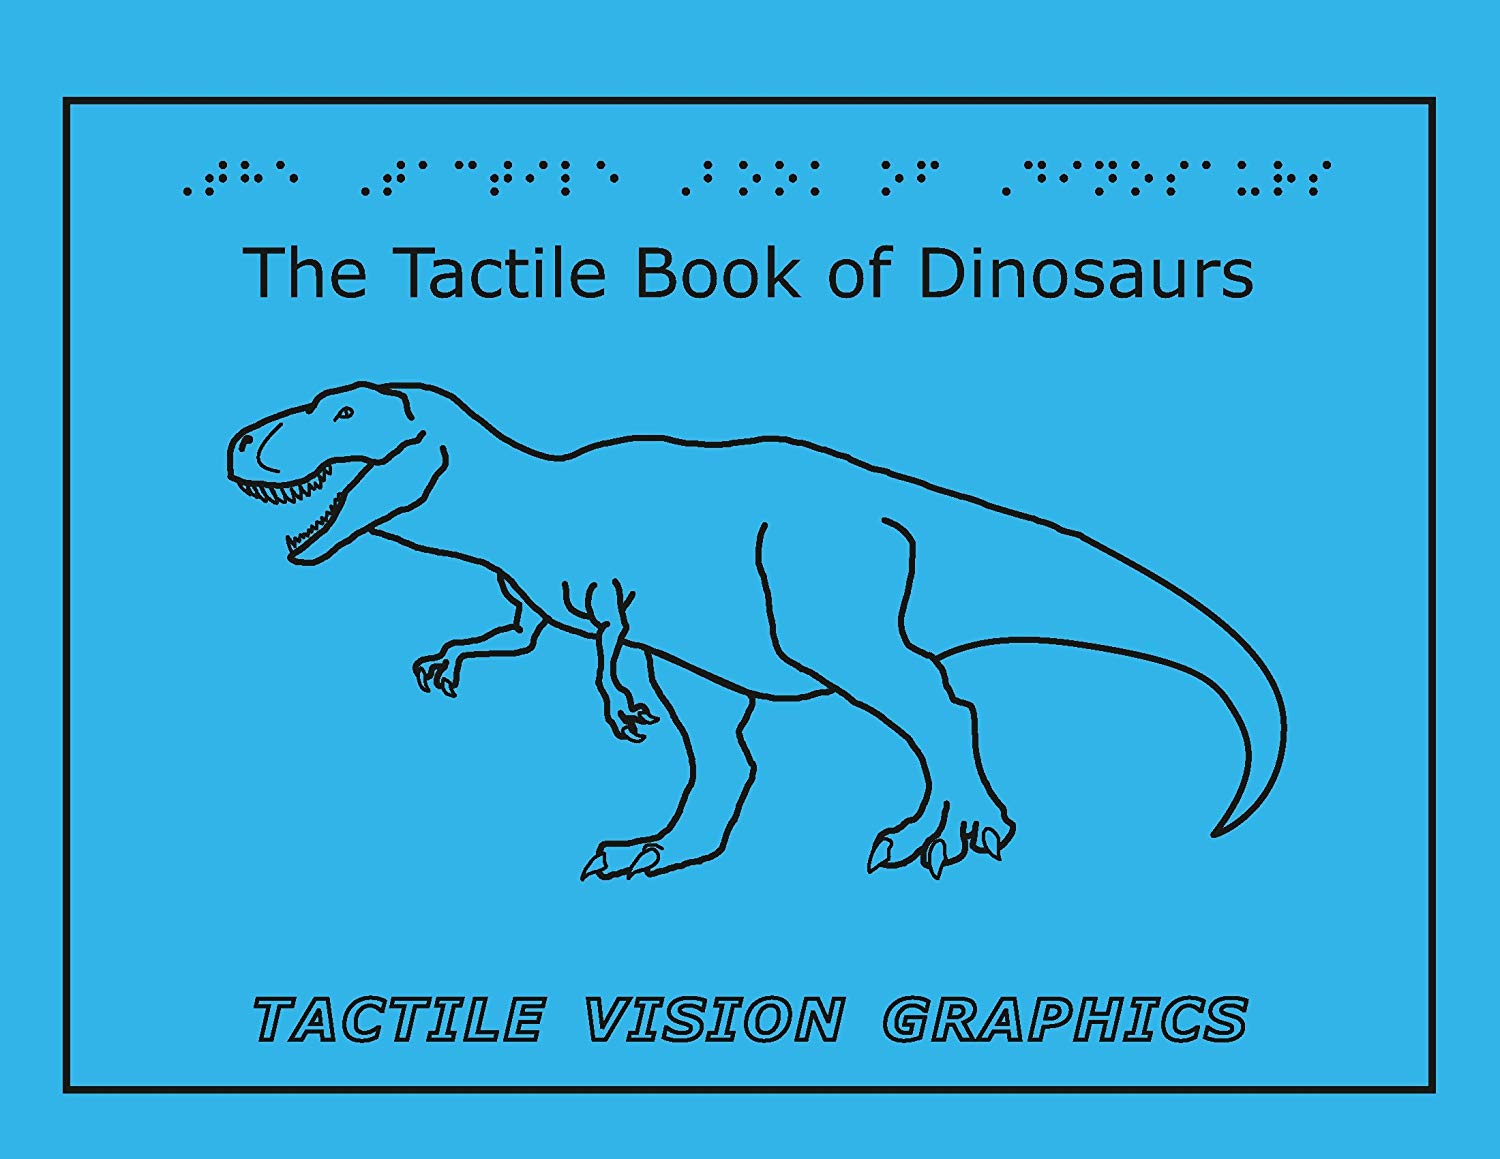 8f1d89f19bb Get Quotations · Tactile Vision Graphics Inc. The Tactile Book of Dinosaurs